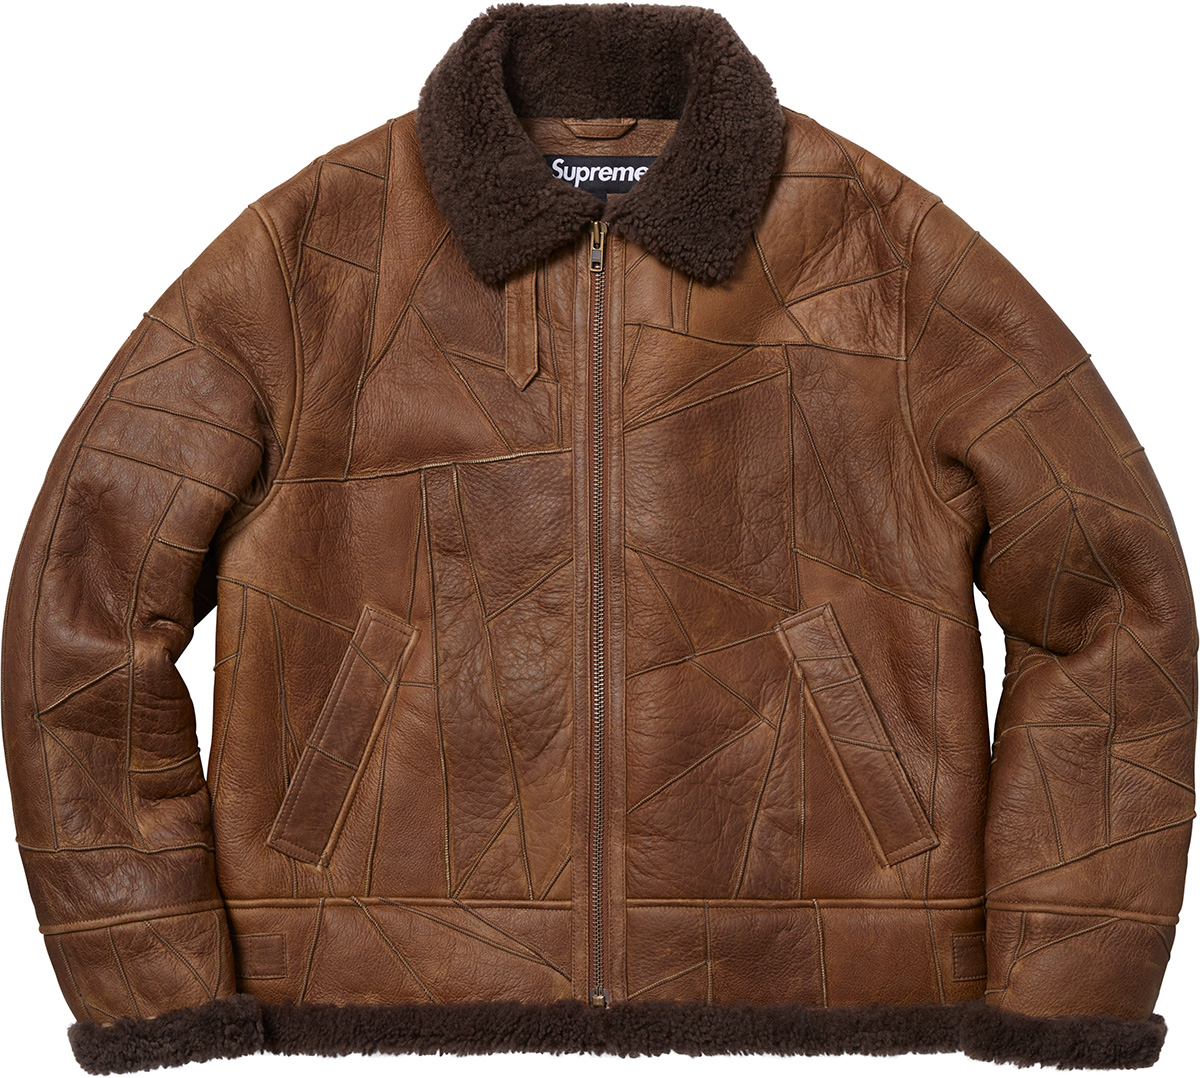 supreme-18aw-fall-winter-patchwork-shearling-b-3-jacket